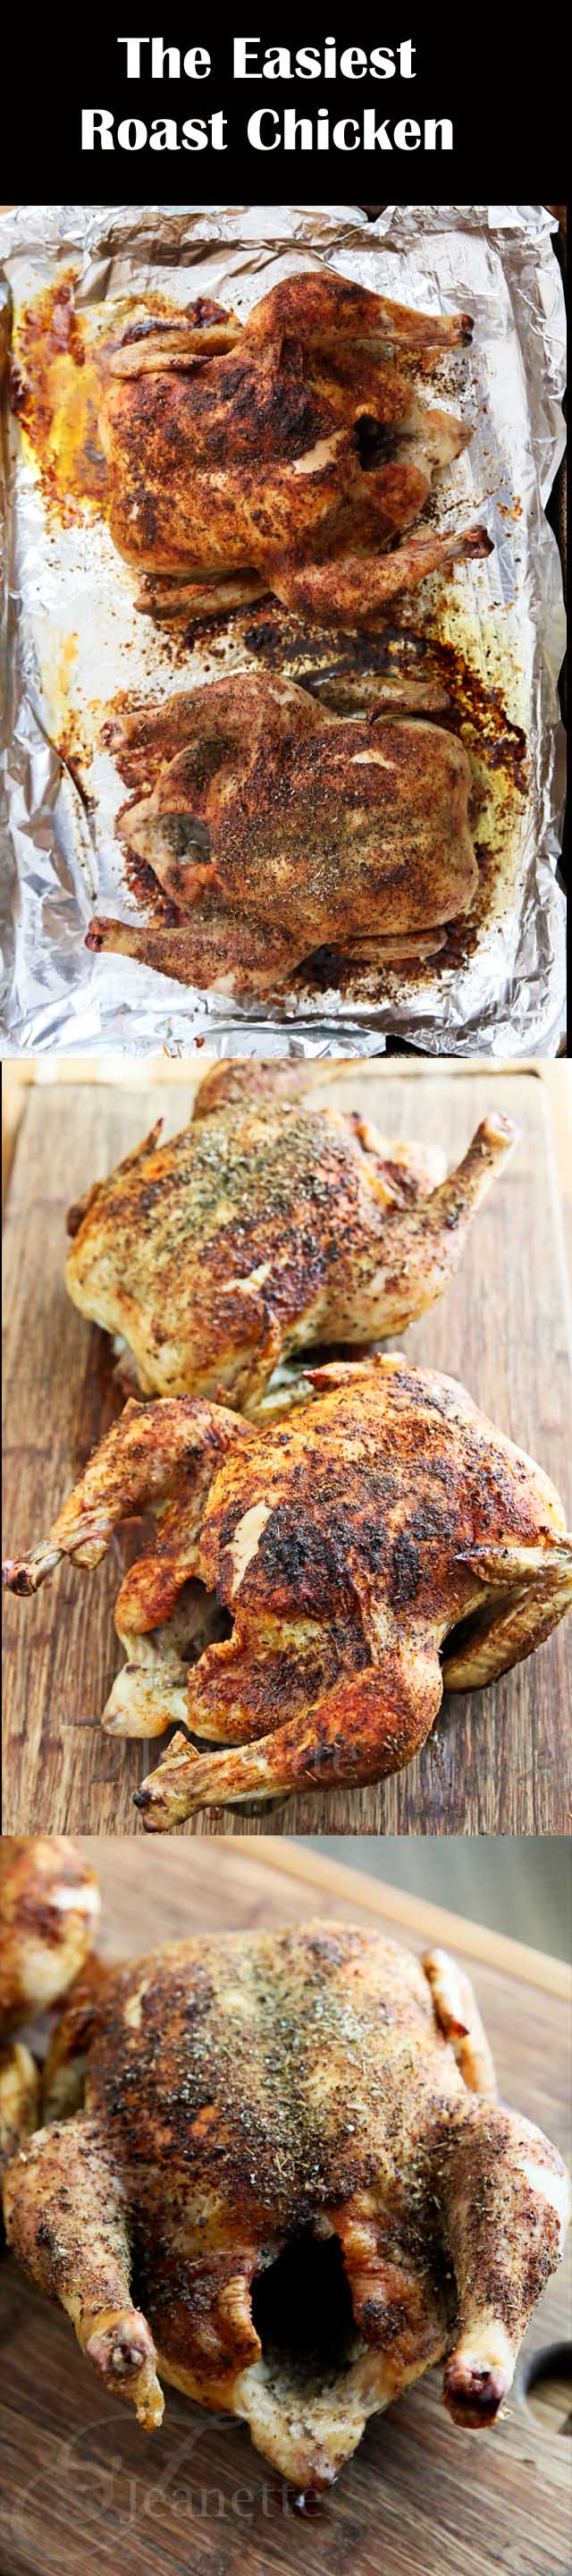 Easy Herb Spiced Roasted Chicken Recipe